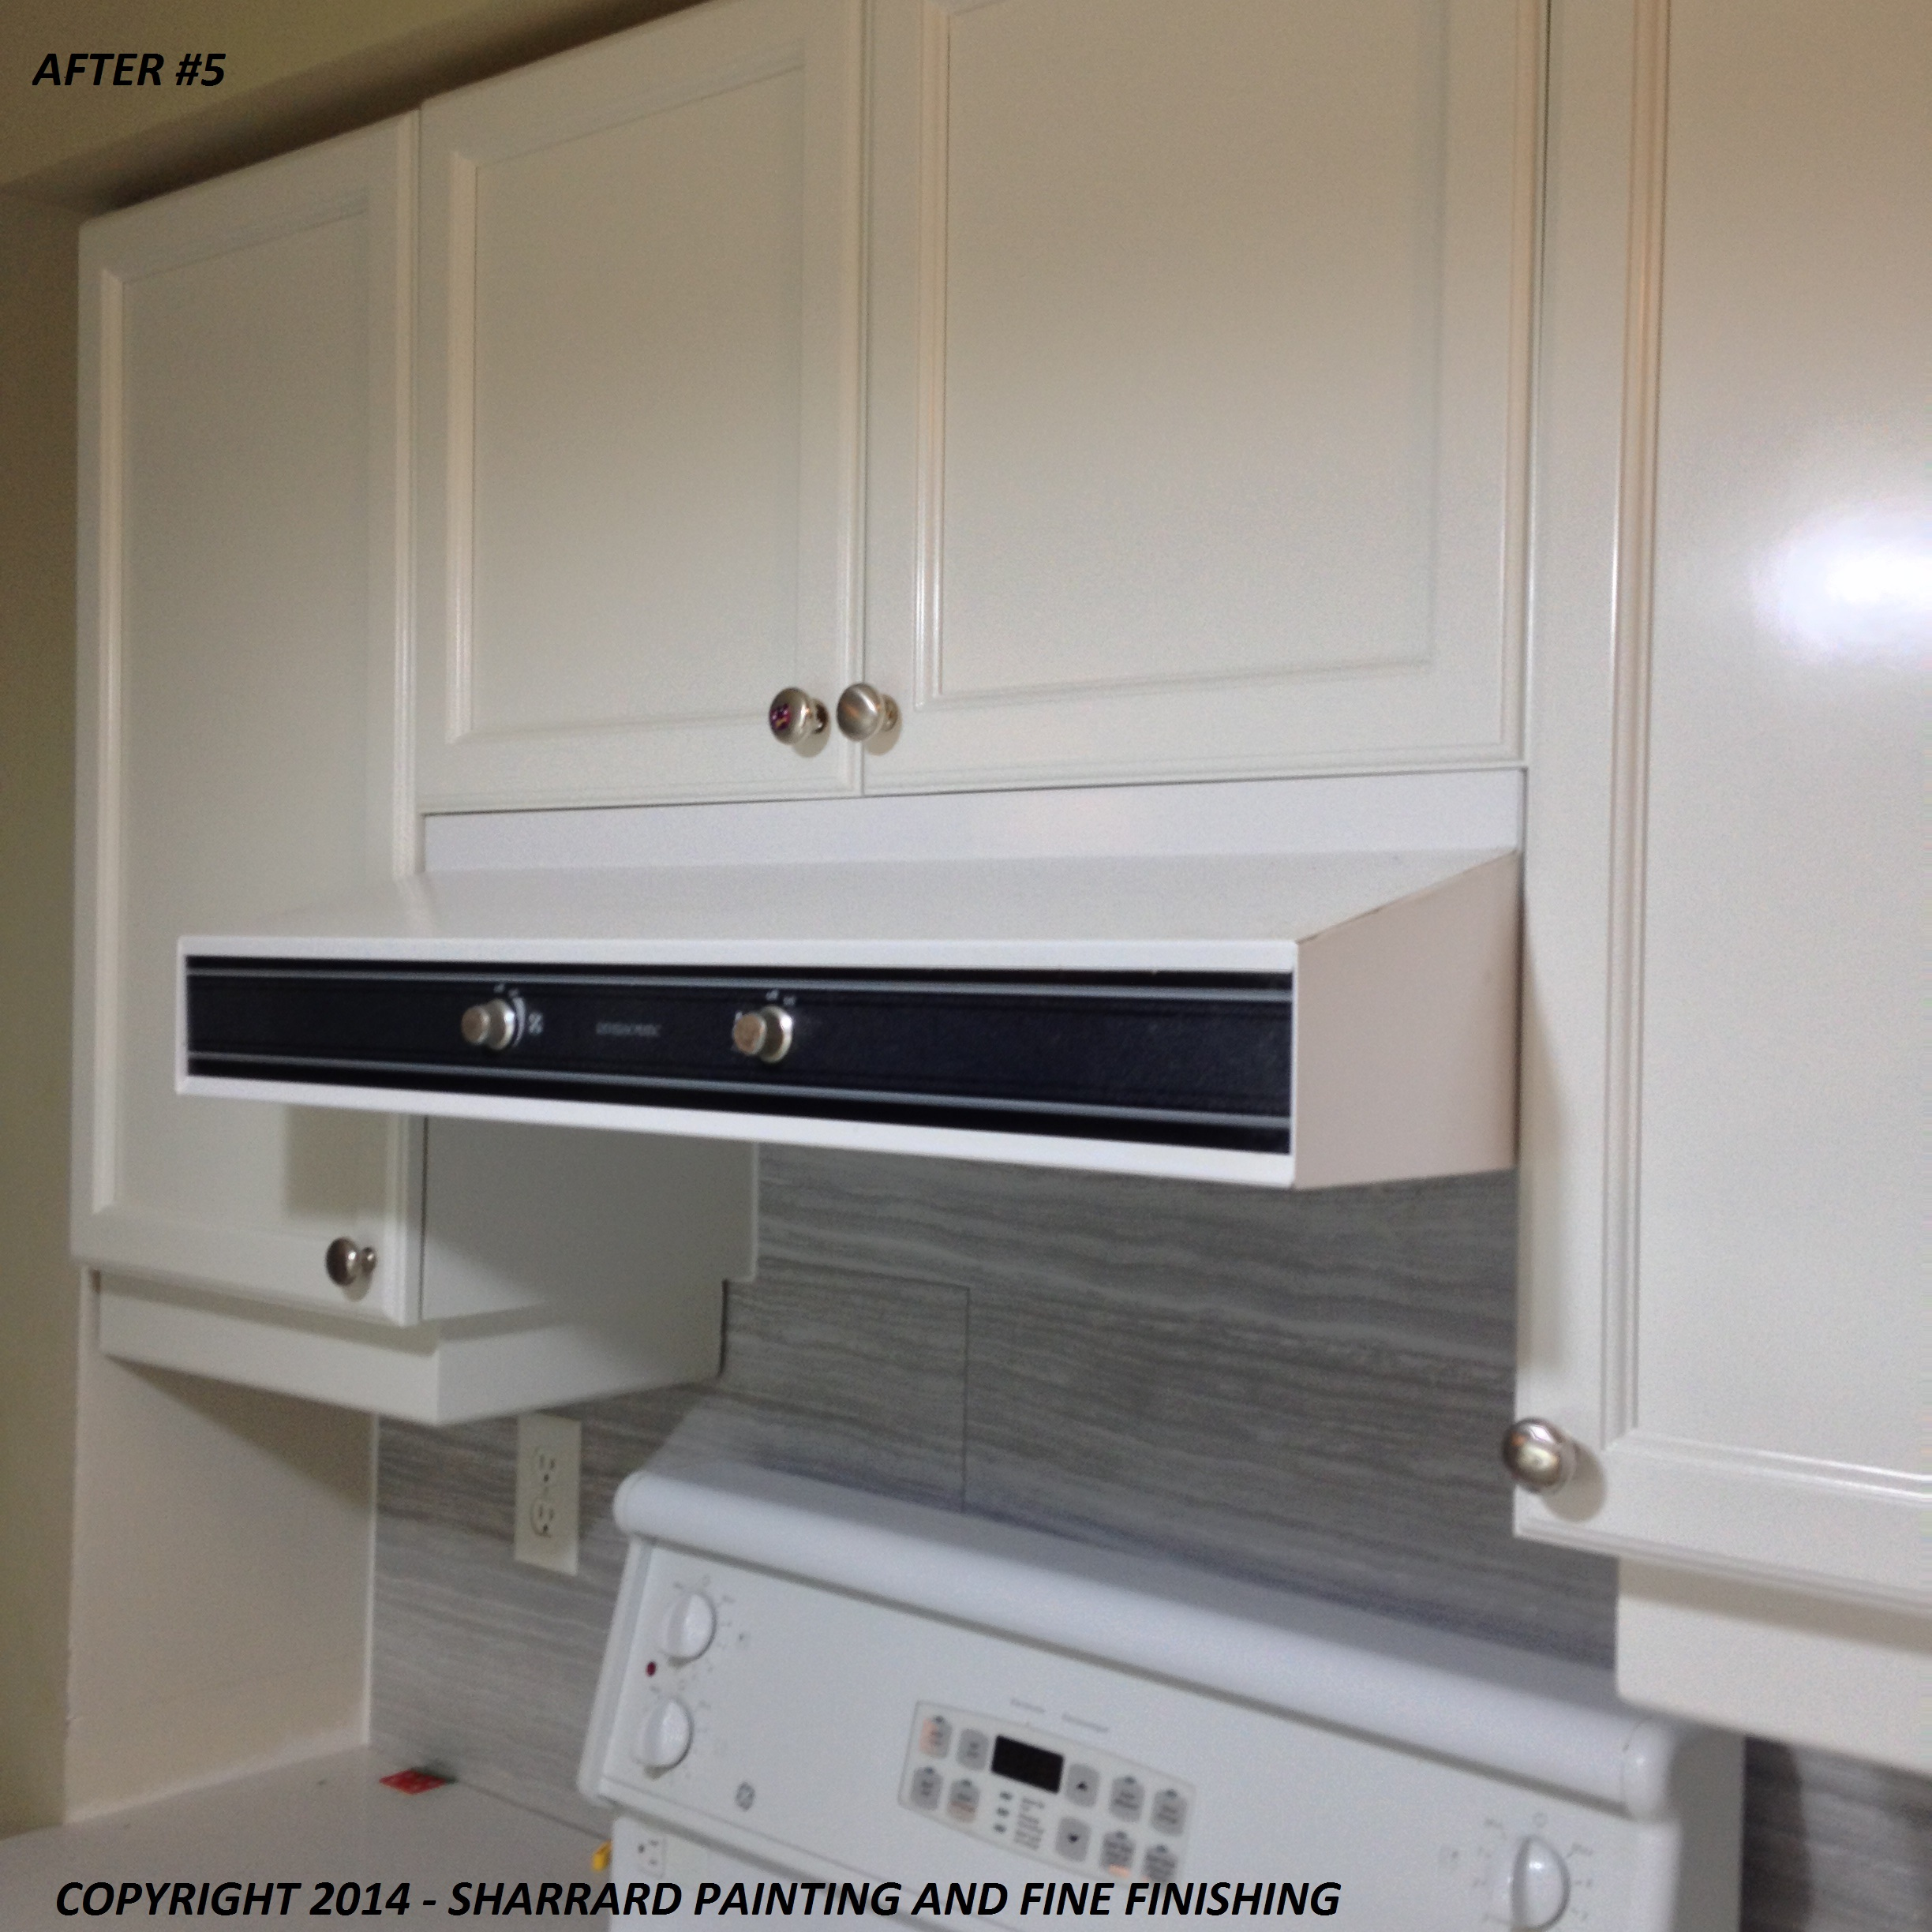 3 Rean Drive Kithcen Cabinet Painting After 5